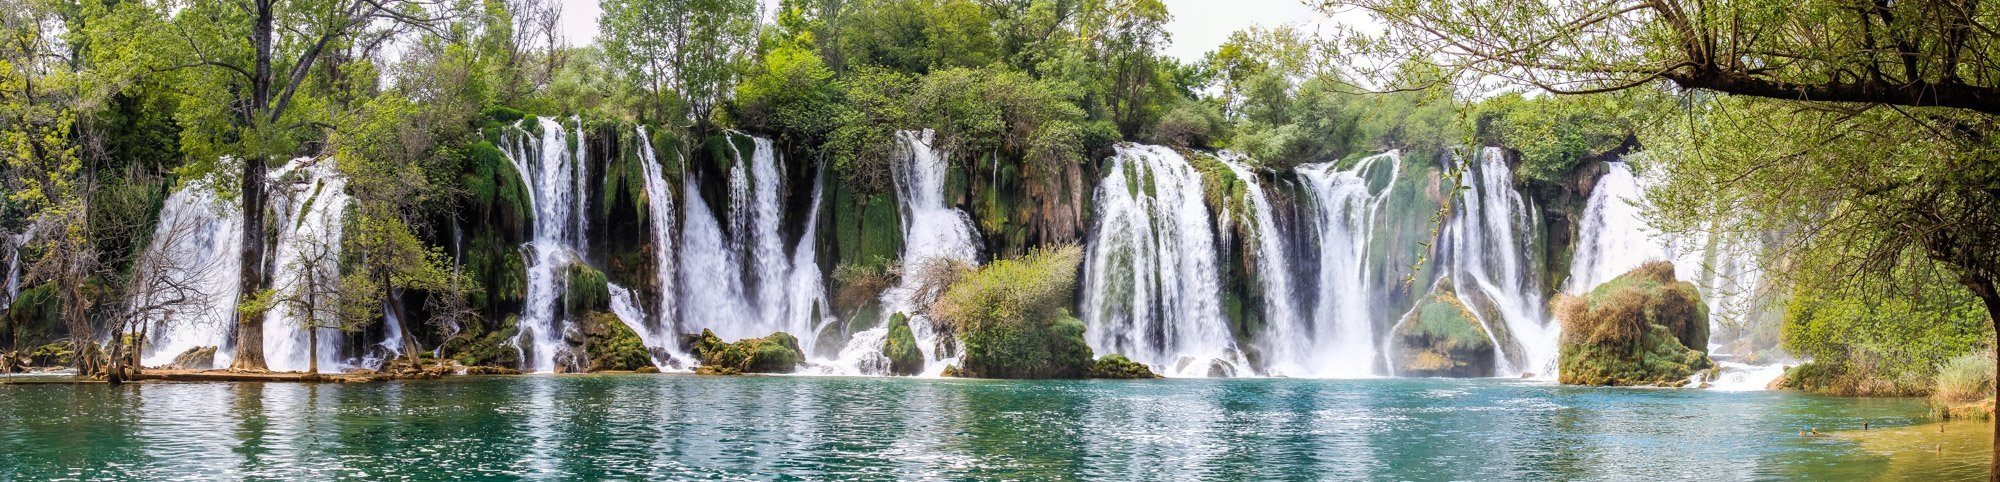 Kravice-Waterfall-photos-5